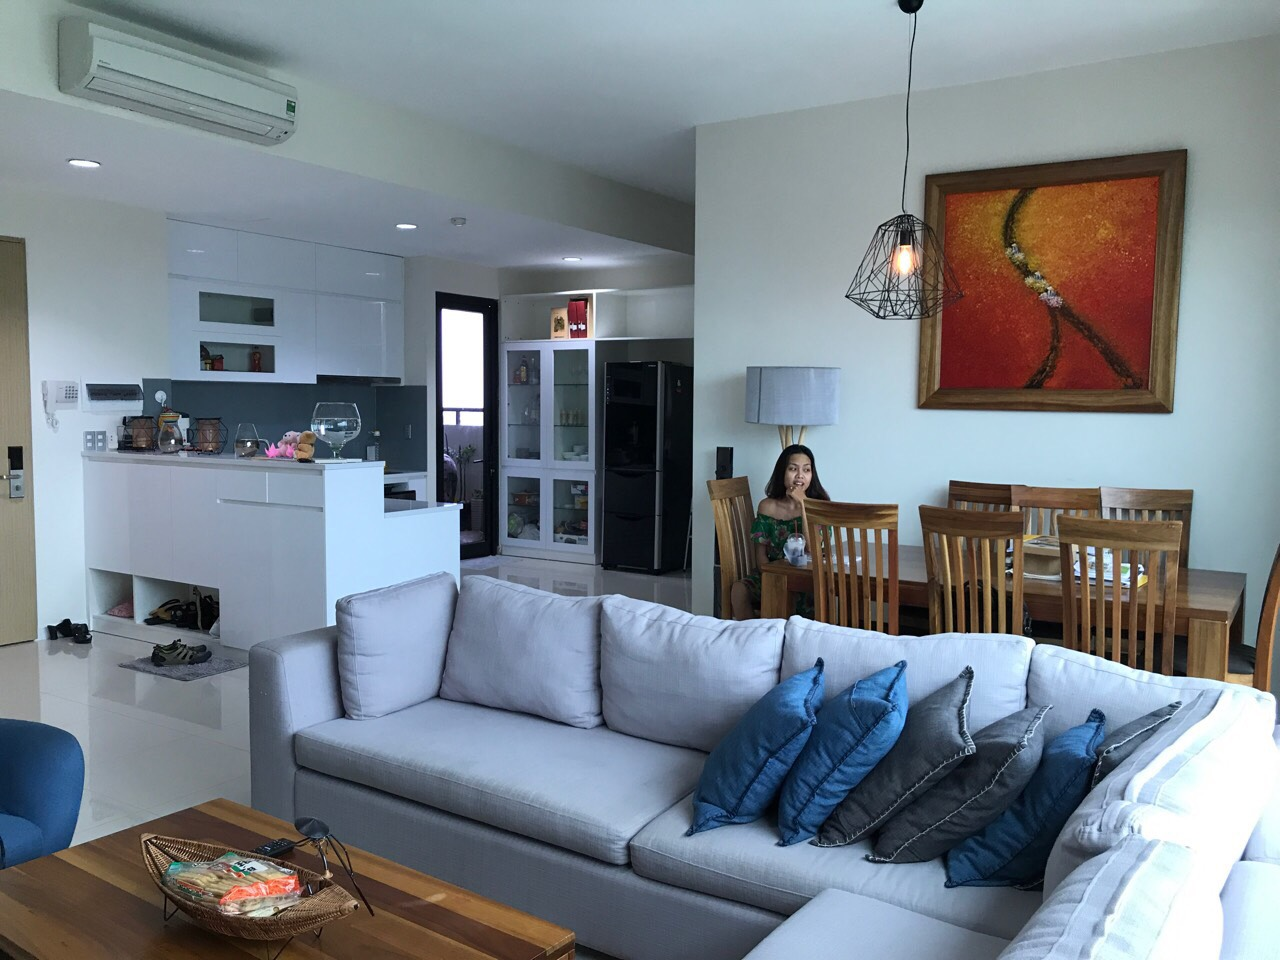 ascent apartment for rent in district 2 hcmc D217055 (2)